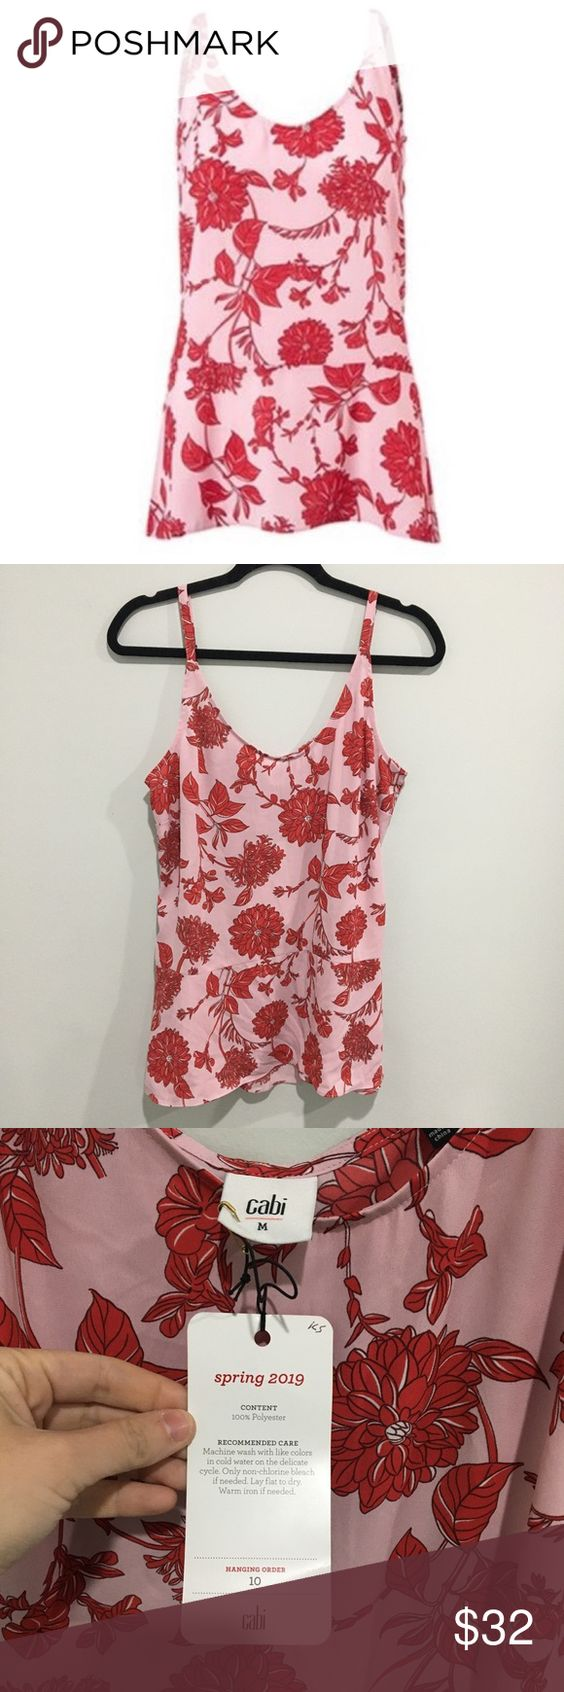 Nwt Cabi Cranberry Crush Adore Cami Spring 2019 In 2020 Floral Tops Cabi Cami Tops